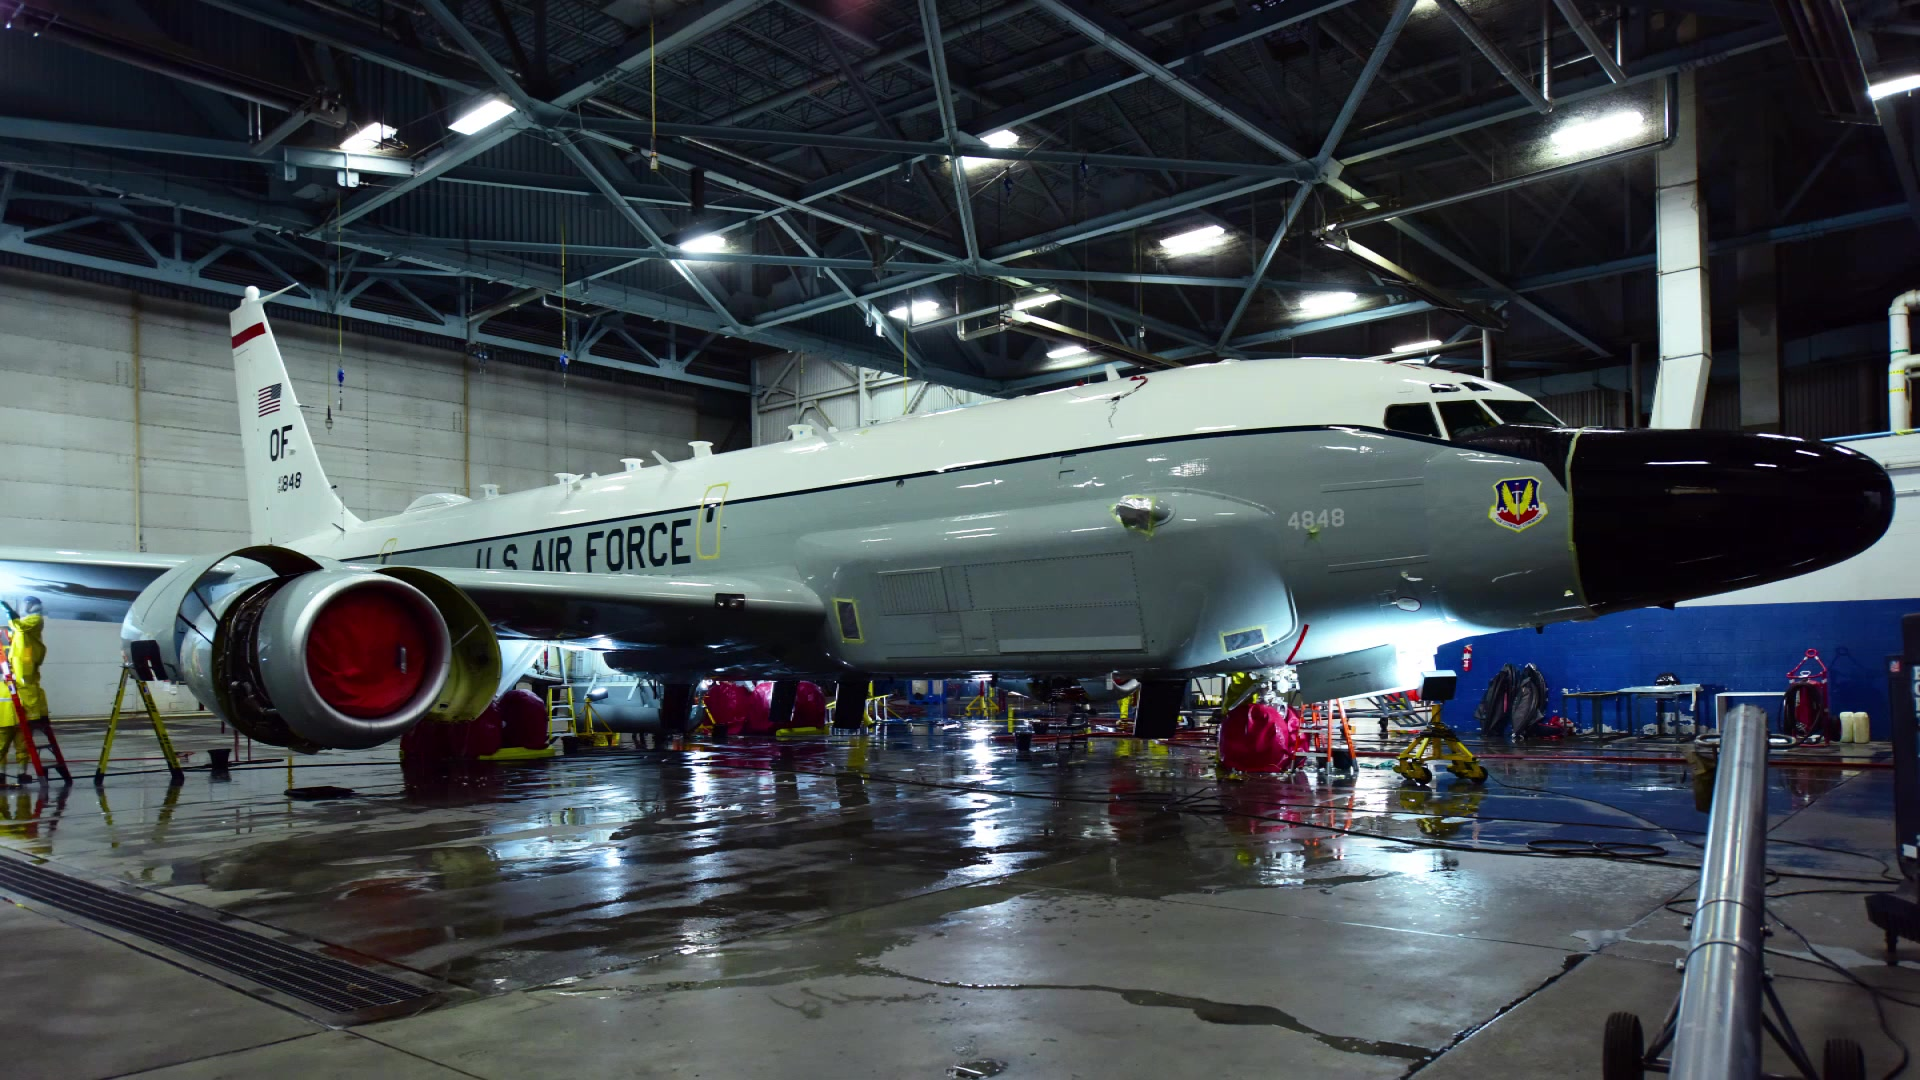 Airmen from the 55th Maintenance Group wash an RC-135 Rivet Joint Oct. 12, 2018, at Offutt Air Force Base, Nebraska. The Rivet Joint supports theater and national level consumers with near real time on-scene intelligence collection, analysis and dissemination capabilities. (U.S. Air Force video by Senior Airman Jacob Skovo) (This video's frame rate has been slowed from its original speed for flexibility in future products)